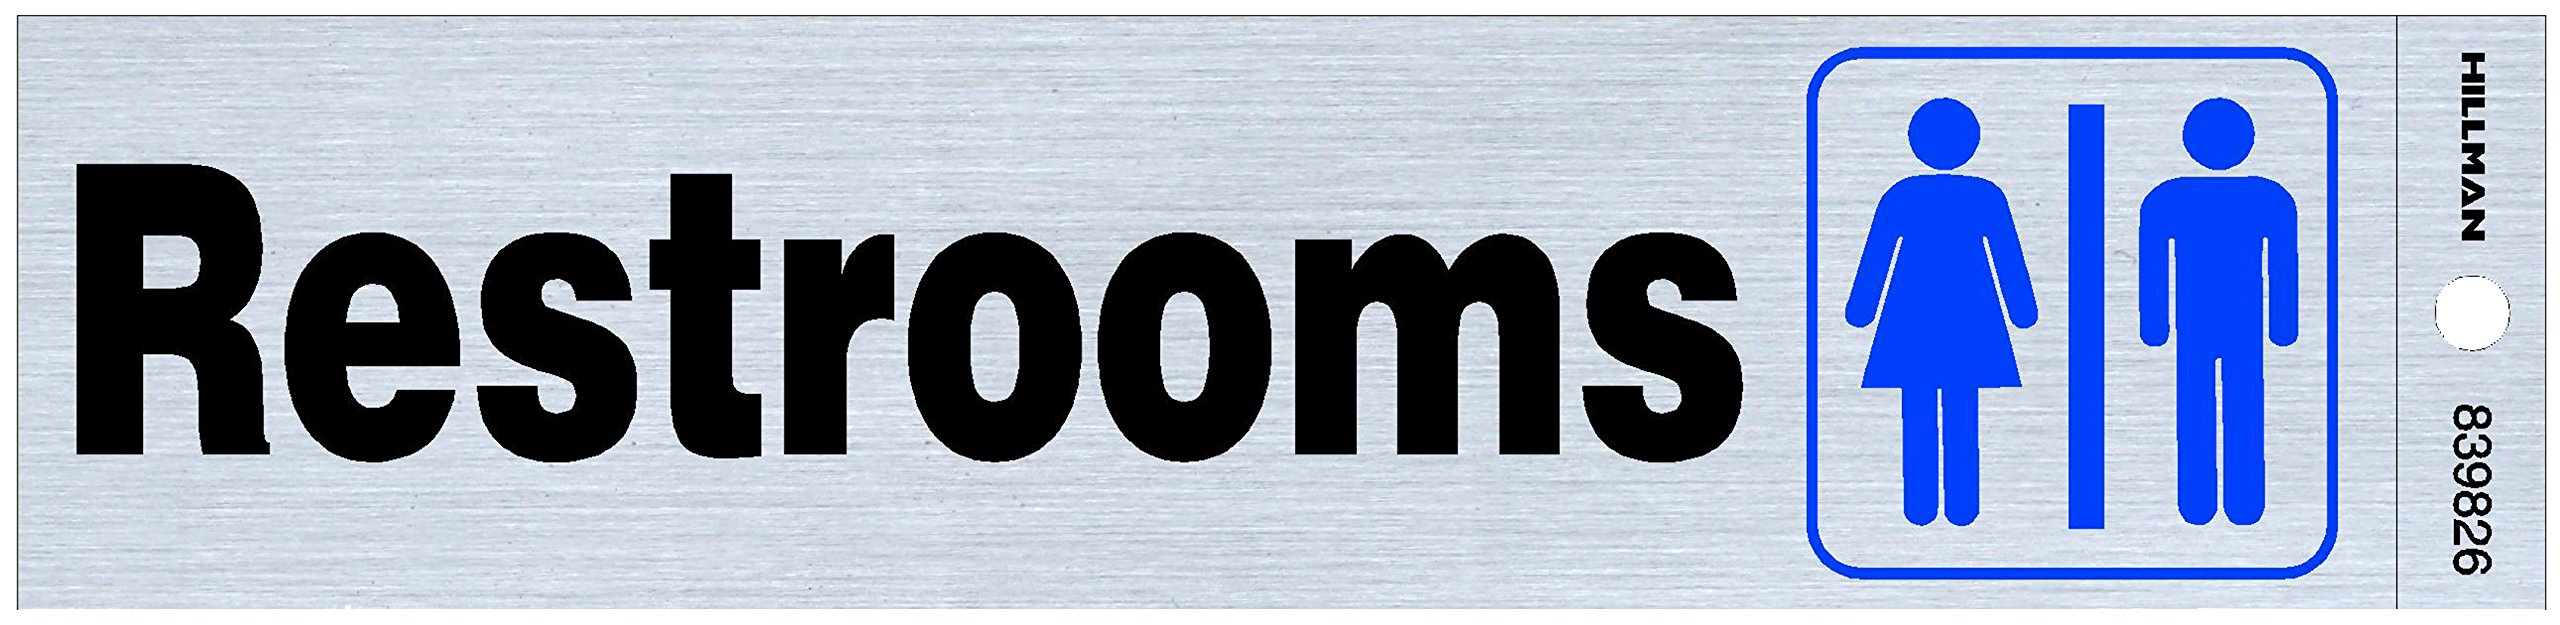 Hillman 839826 Restrooms Self Adhesive Sign, Nickel, Black and Blue Mylar, 2x8 Inches 1-Sign